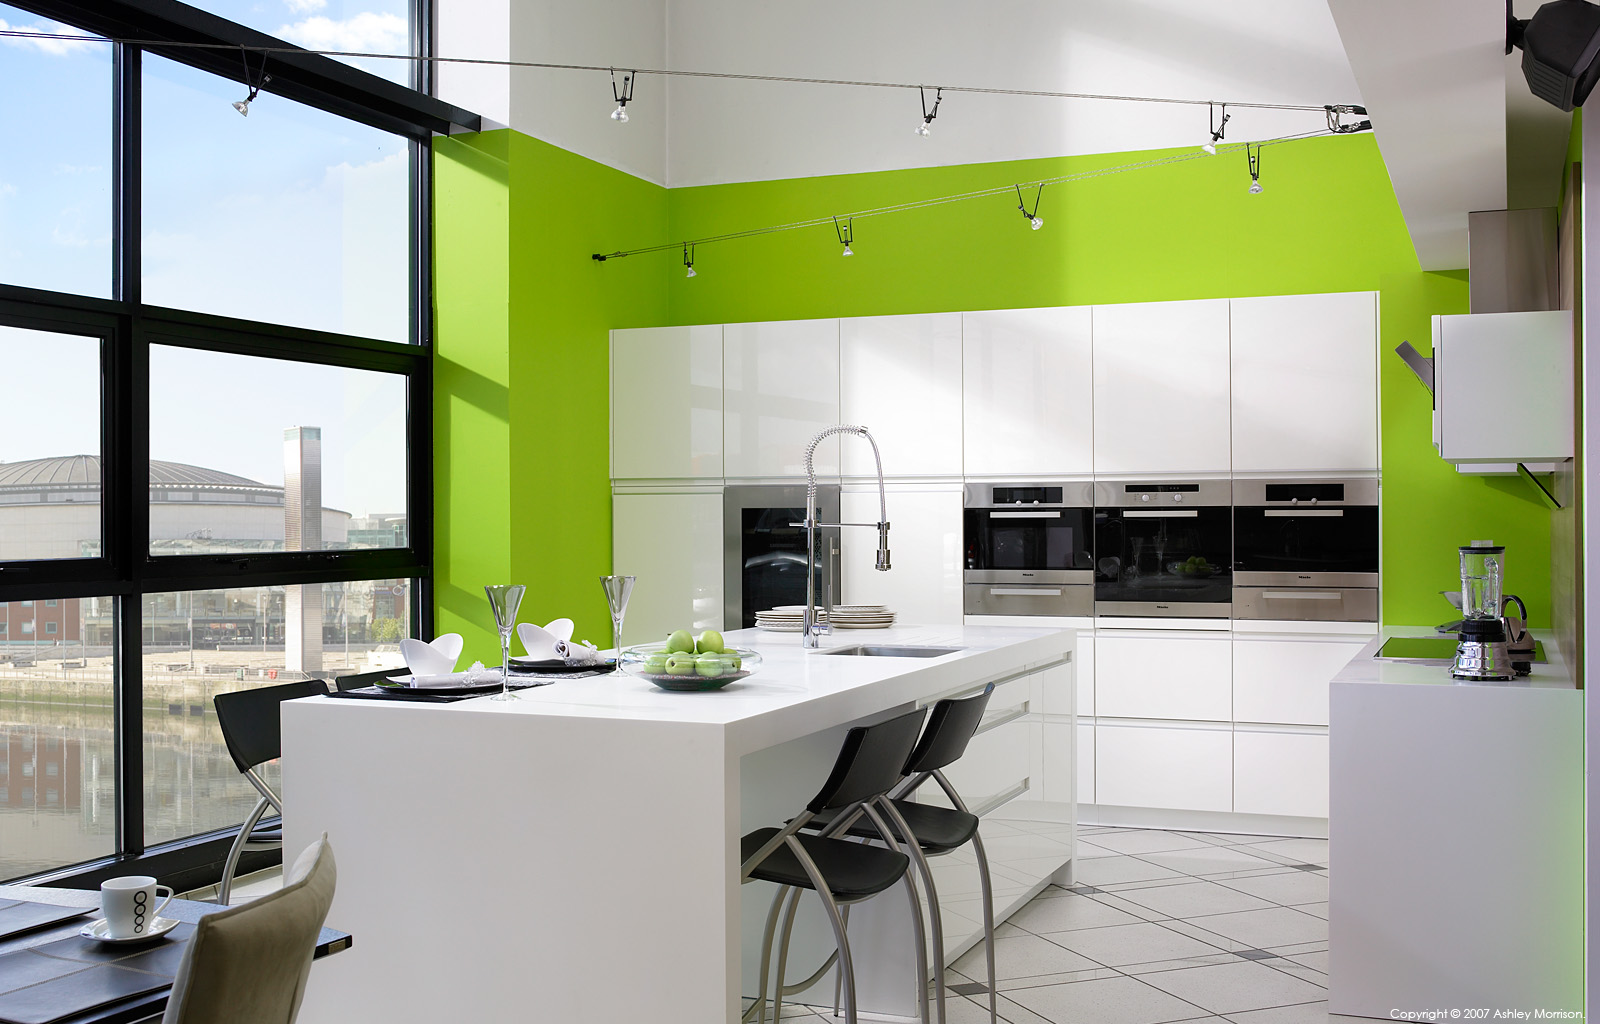 A Robinson Interiors High Gloss white kitchen overlooking Belfast Laganside by Ashley Morrison.